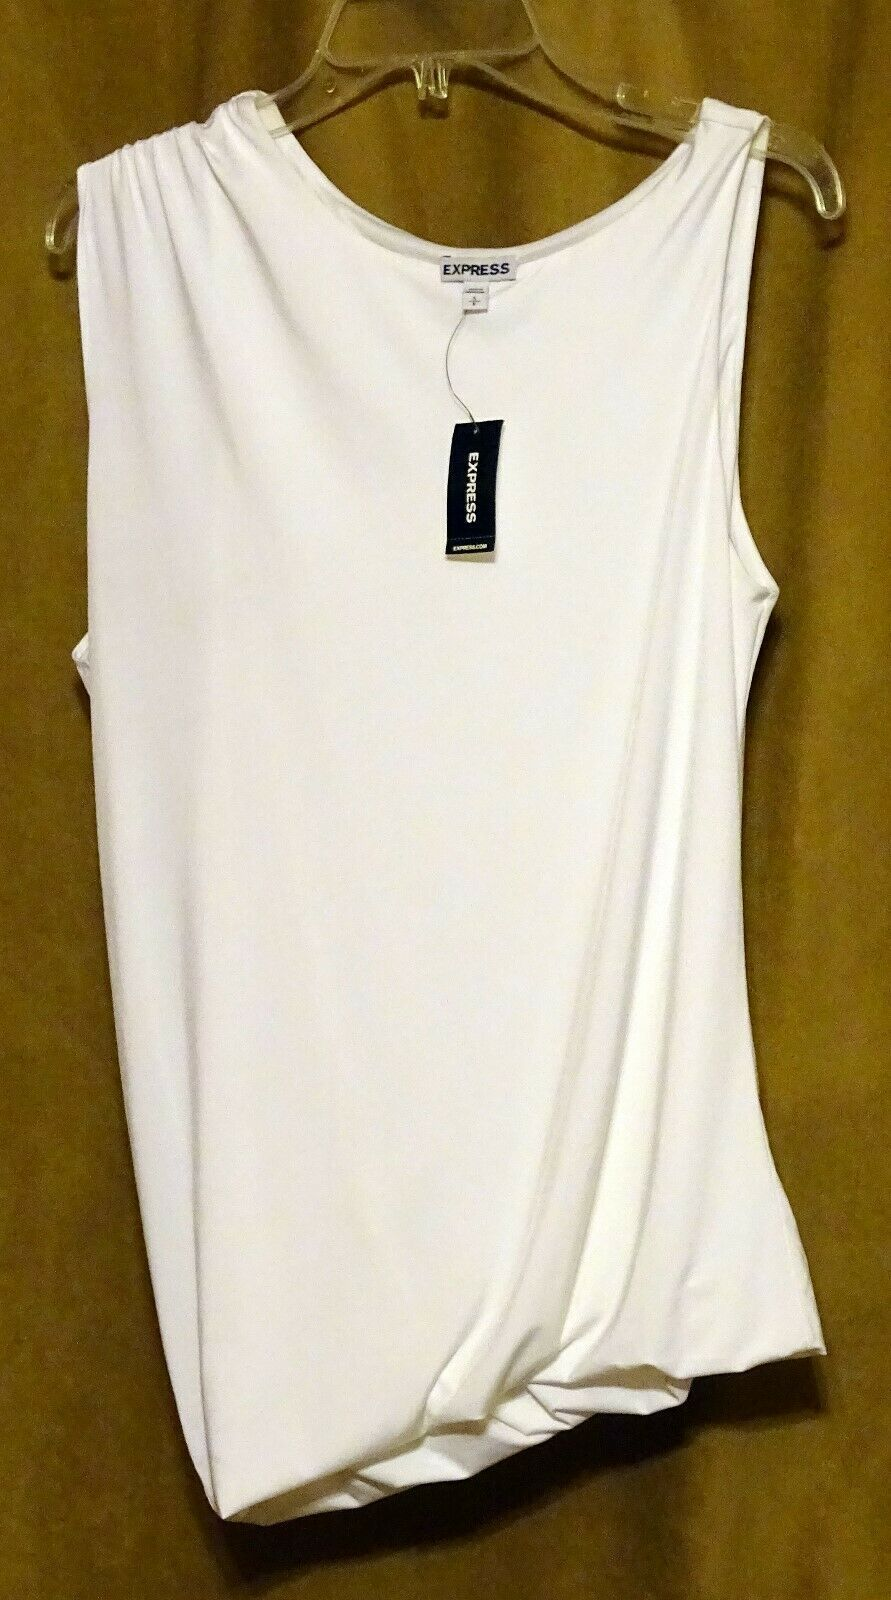 NEW EXPRESS $35 WHITE ASYMMETRIC DRAPED LINED SLEEVELESS DRESSY TOP BLOUSE S